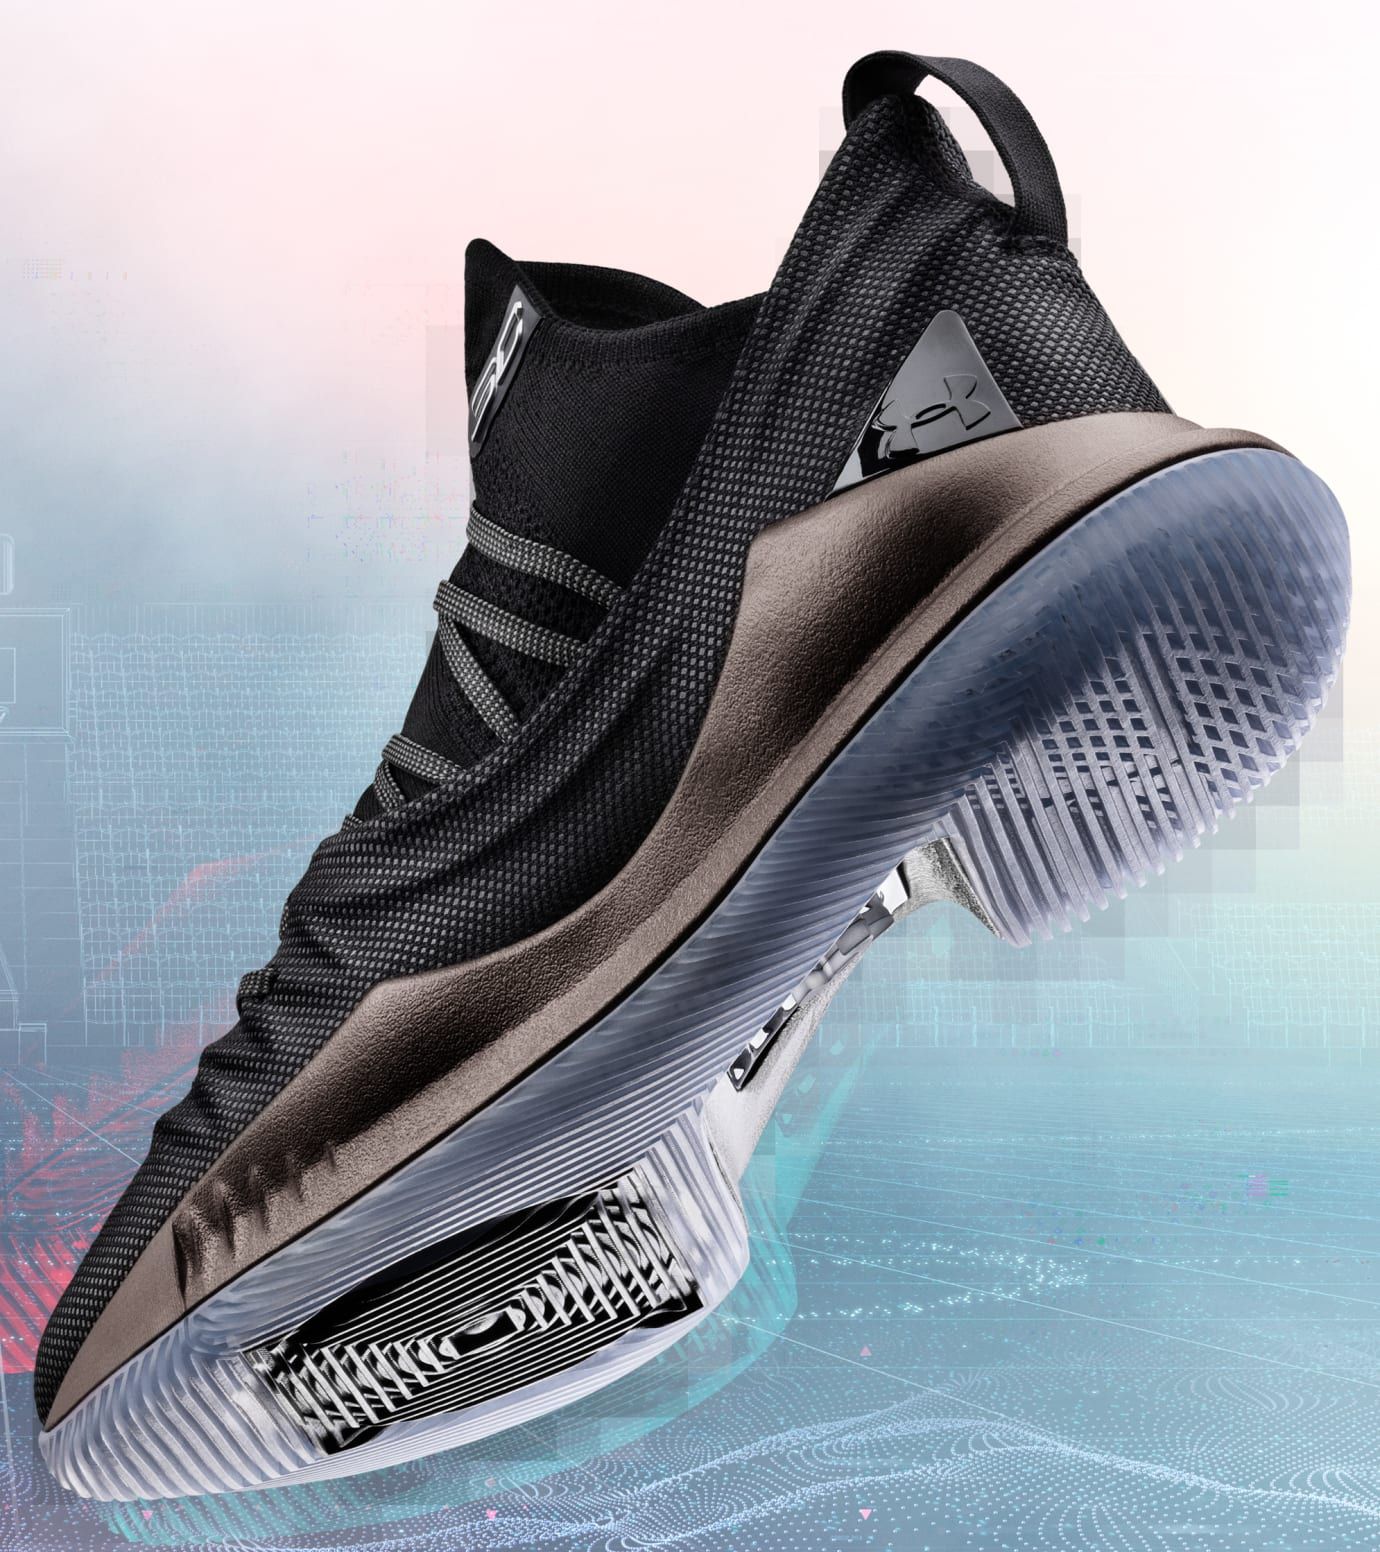 Under Armour Curry 5 'Pi Day' (Outsole)